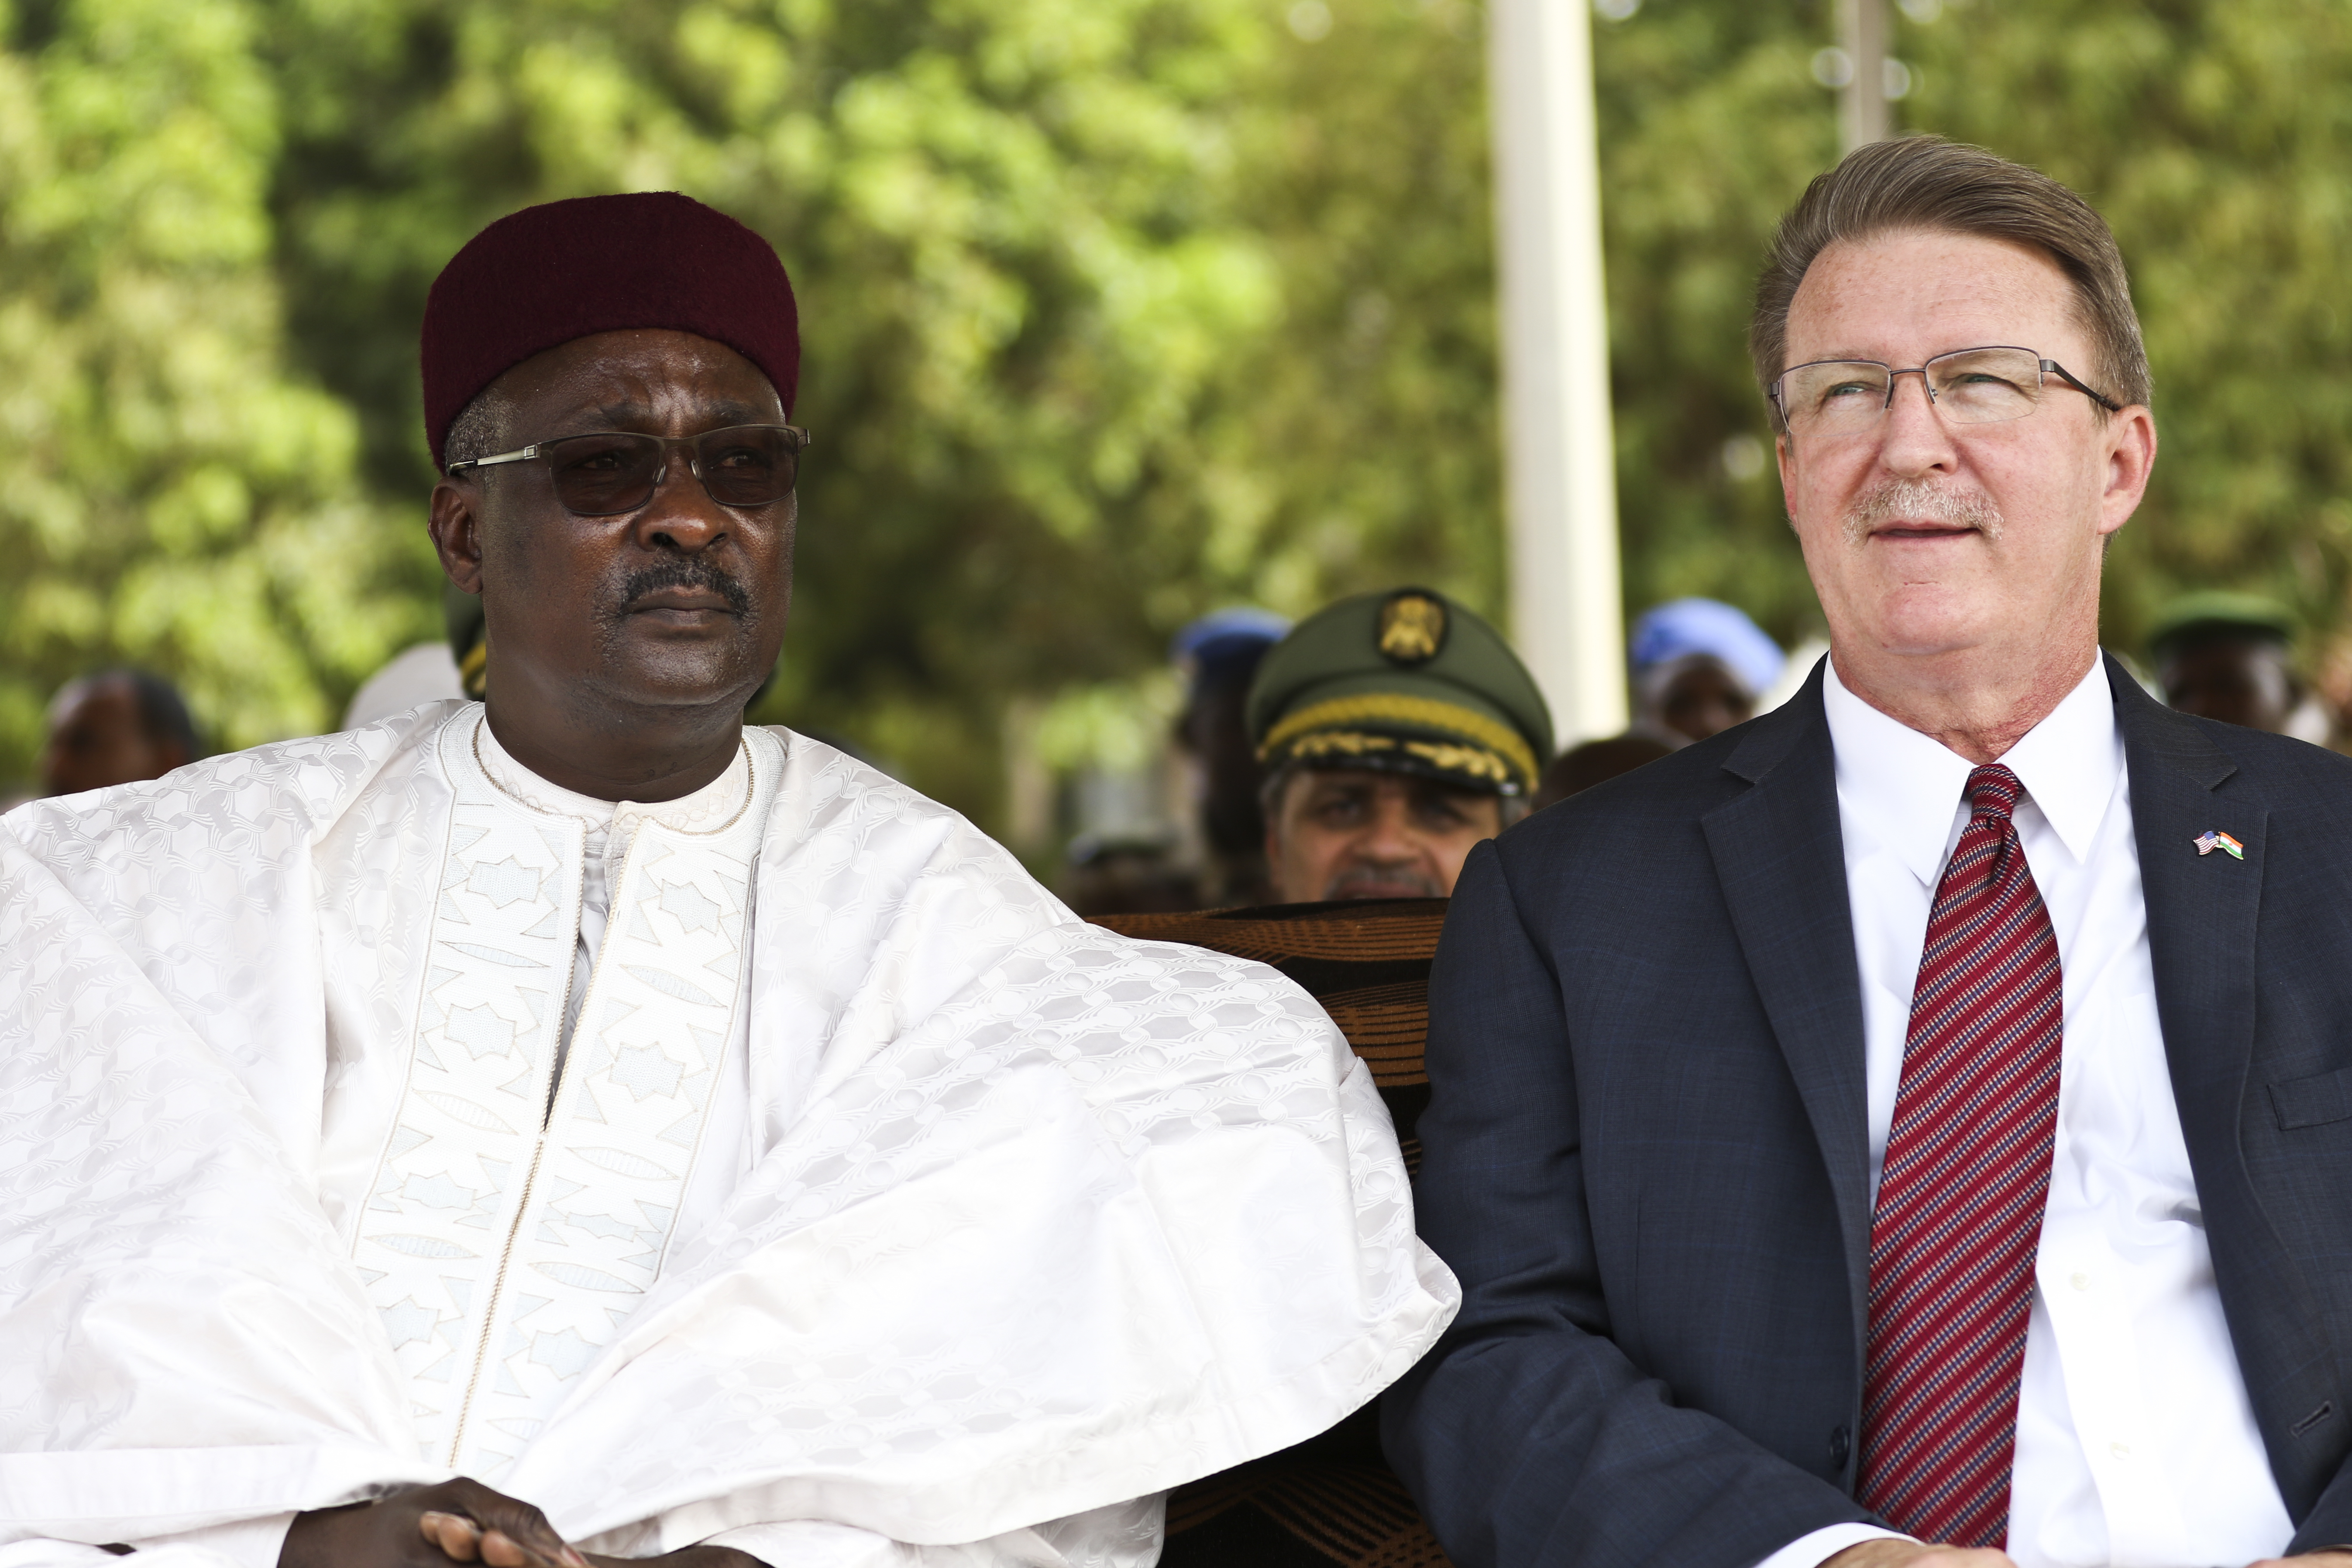 NIAMEY, Niger – Moutari Kalla, Nigerien Minister of Defense, and Amb. Eric Whitaker, U.S. Ambassador to Niger, observe the opening ceremony of Flintlock 2018 in Niamey, Niger, April 11, 2018. Flintlock is an annual, African-led, integrated military and law enforcement exercise that has strengthened key partner nation forces throughout North and West Africa as well as western Special Operations Forces since 2005. (U.S. Army Photo by Sgt. Heather Doppke/79th Theater Sustainment Command)